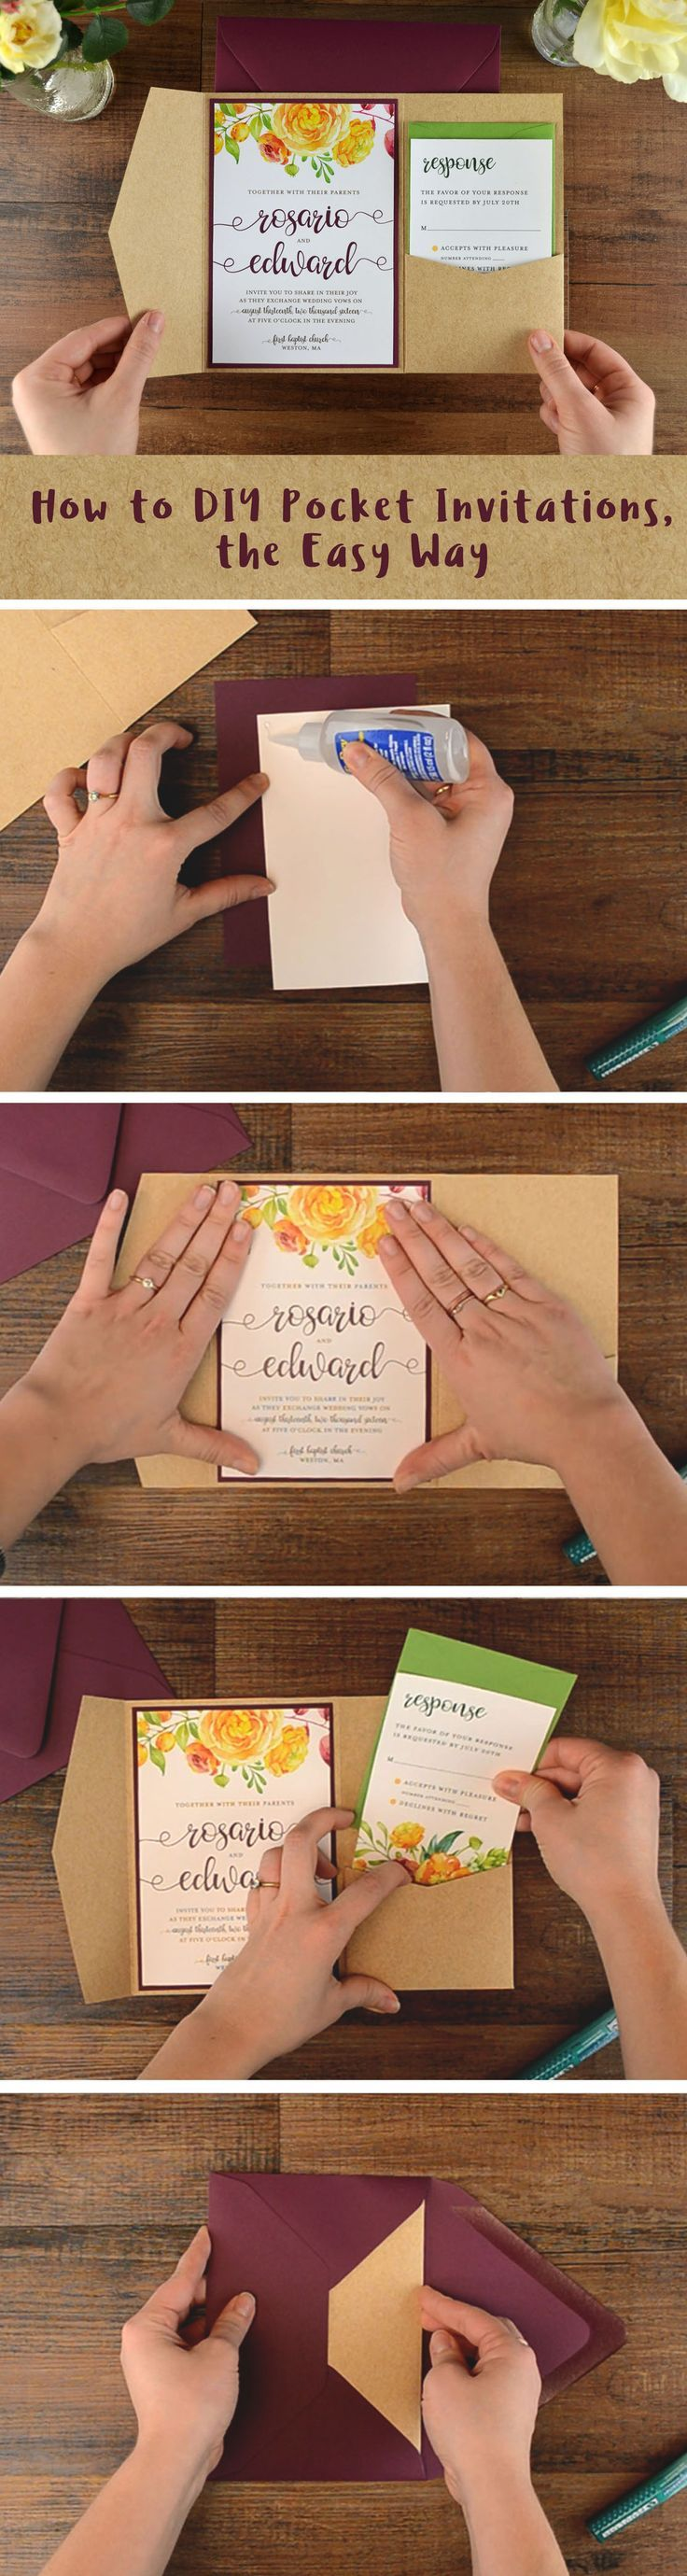 Easy DIY Pocket Invitation   It's easy to create cheap wedding invitations when you DIY. Learn how to make a beautiful pocket invite with DIY supplies, featuring our modern floral free invitation template: http://blog.cardsandpockets.com/2017/01/12/how-to-diy-pocket-invitations-the-easy-way/